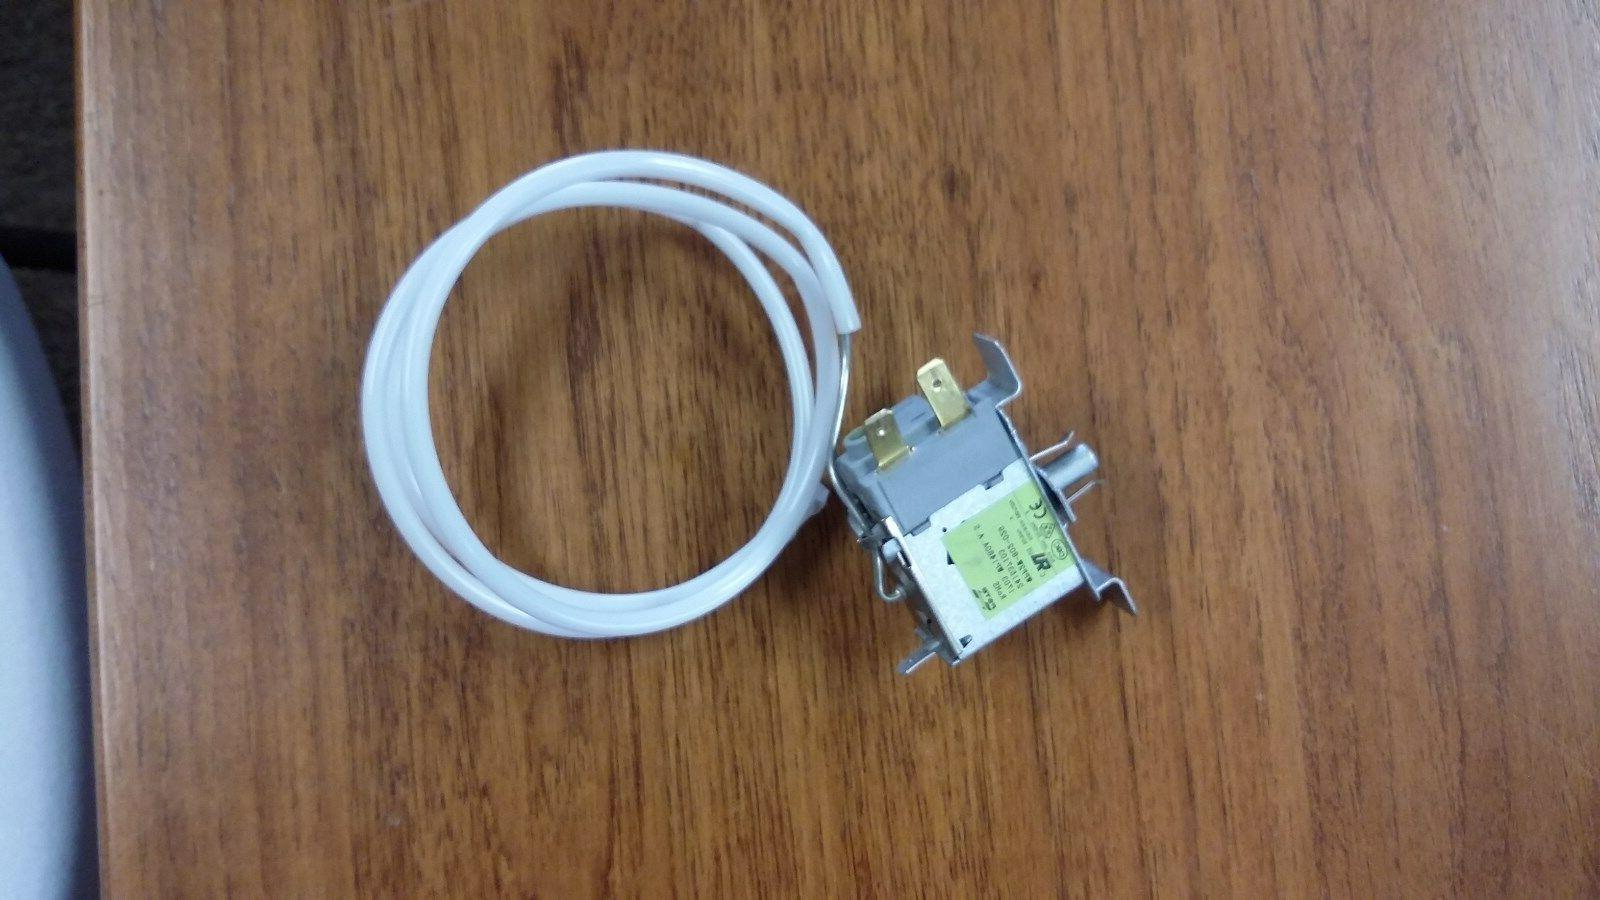 Frigidaire Cold Control Thermostat